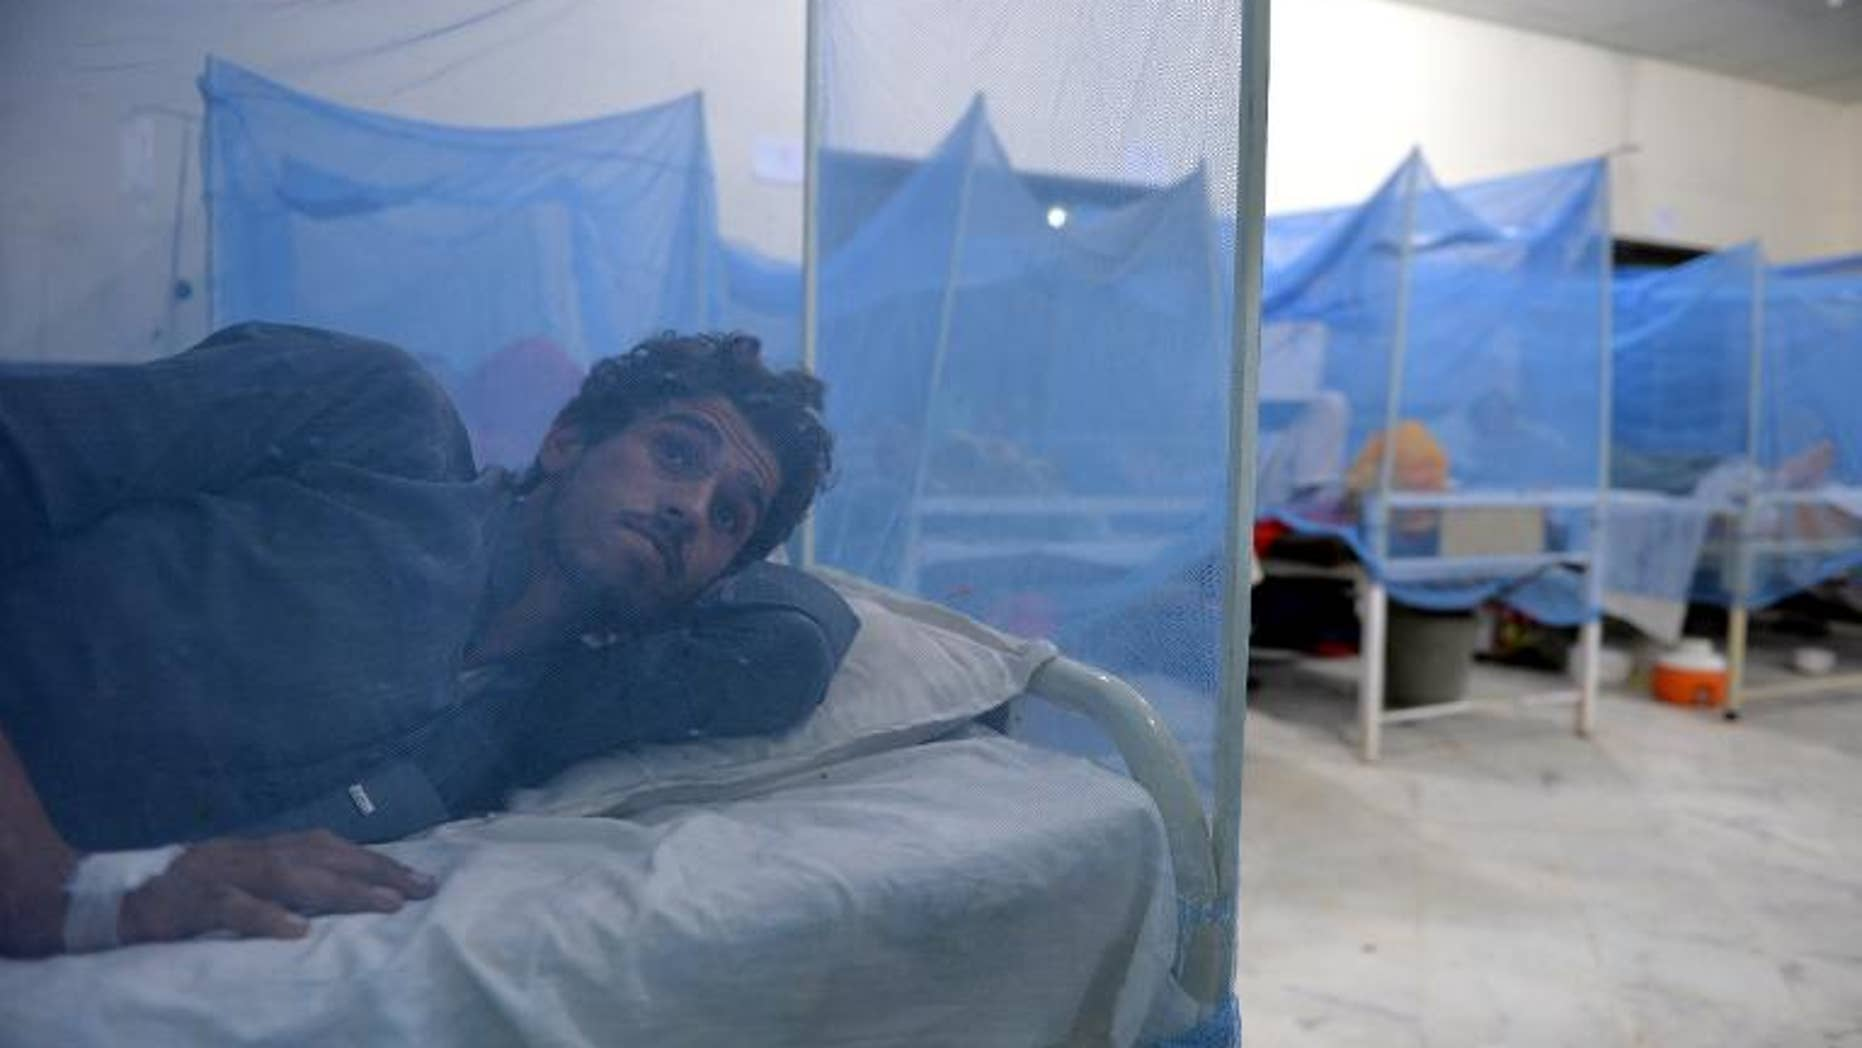 Dengue fever patients at a hospital in Mingora, the main city in Pakistan's Swat Valley, on September 23, 2013